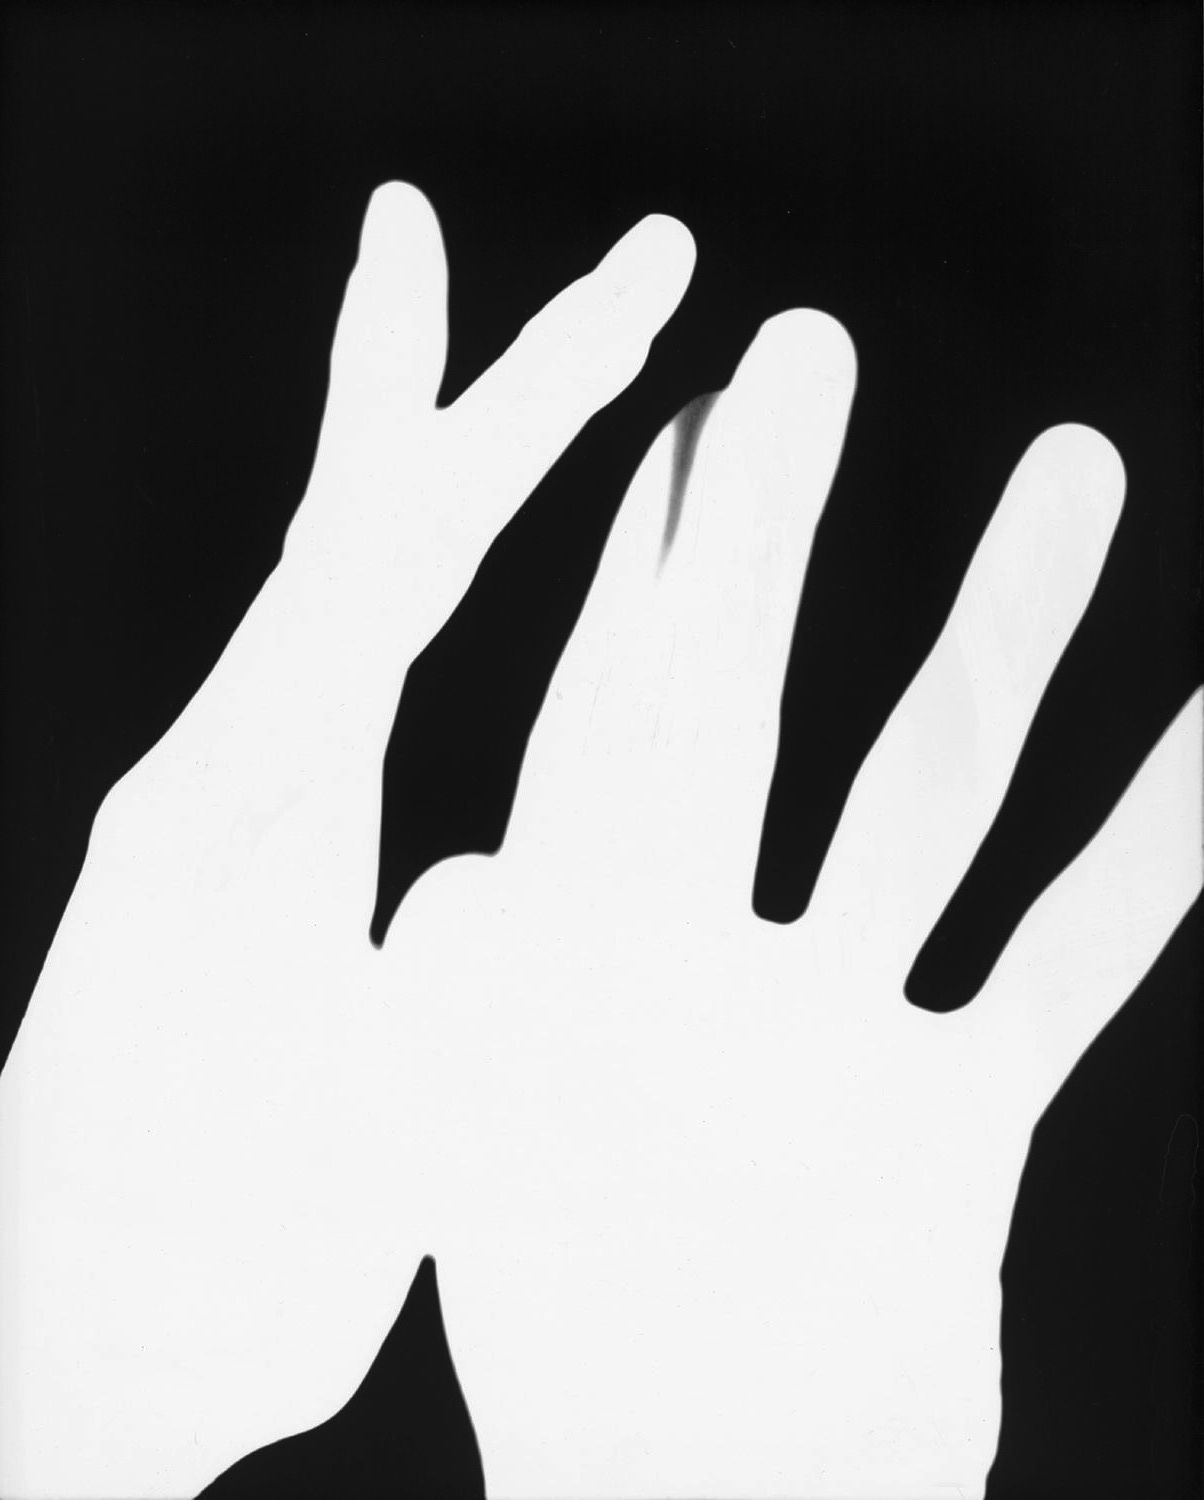 James Welling <i>Hands #1</i> 1975 Chromogenic exhibition print  18 1/2 x 16 inches, framed